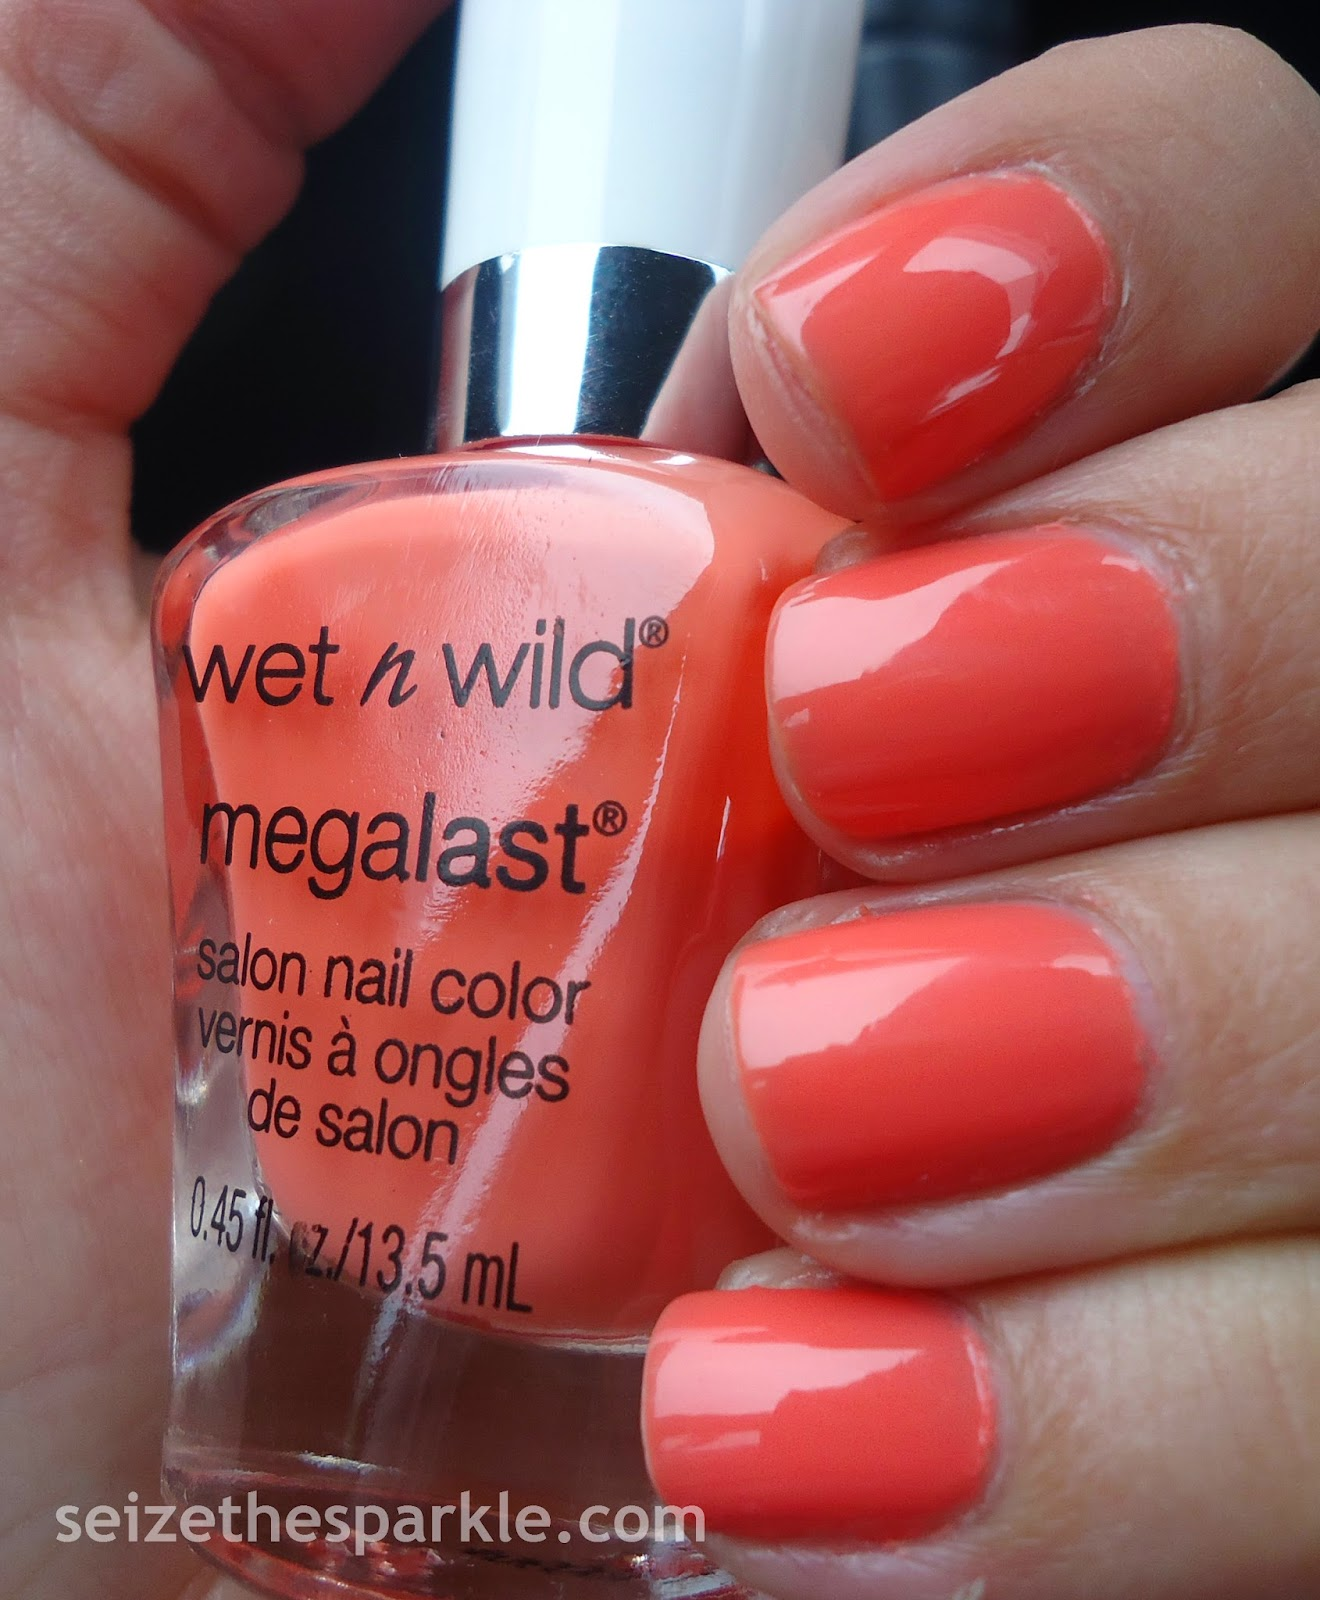 Love Me Some Muscles by Wet n Wild